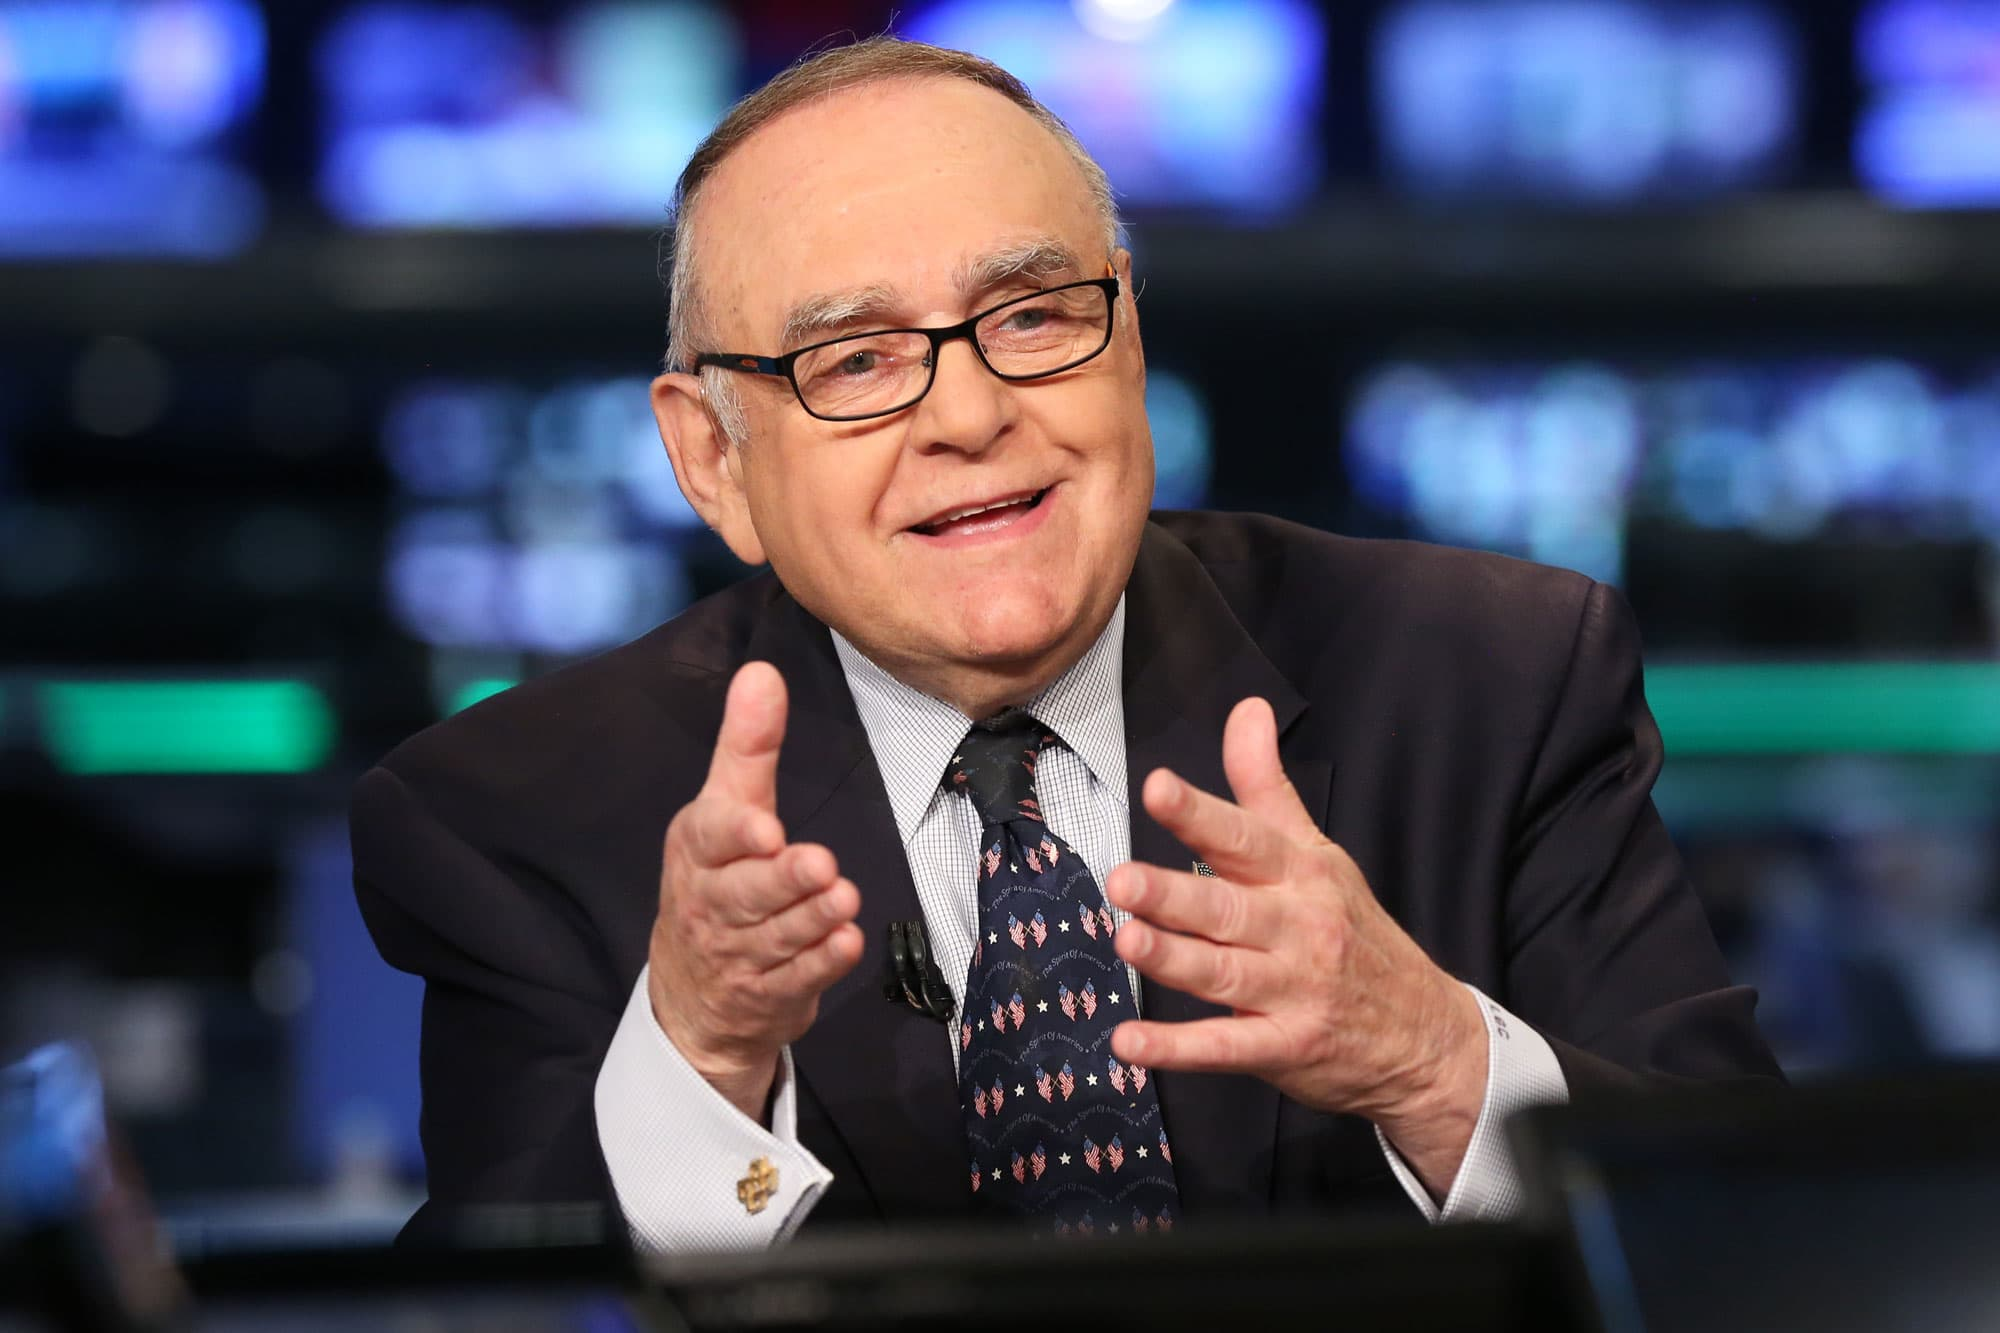 Leon Cooperman sees 'euphoria' in parts of market, says he's skeptical on long-term outlook